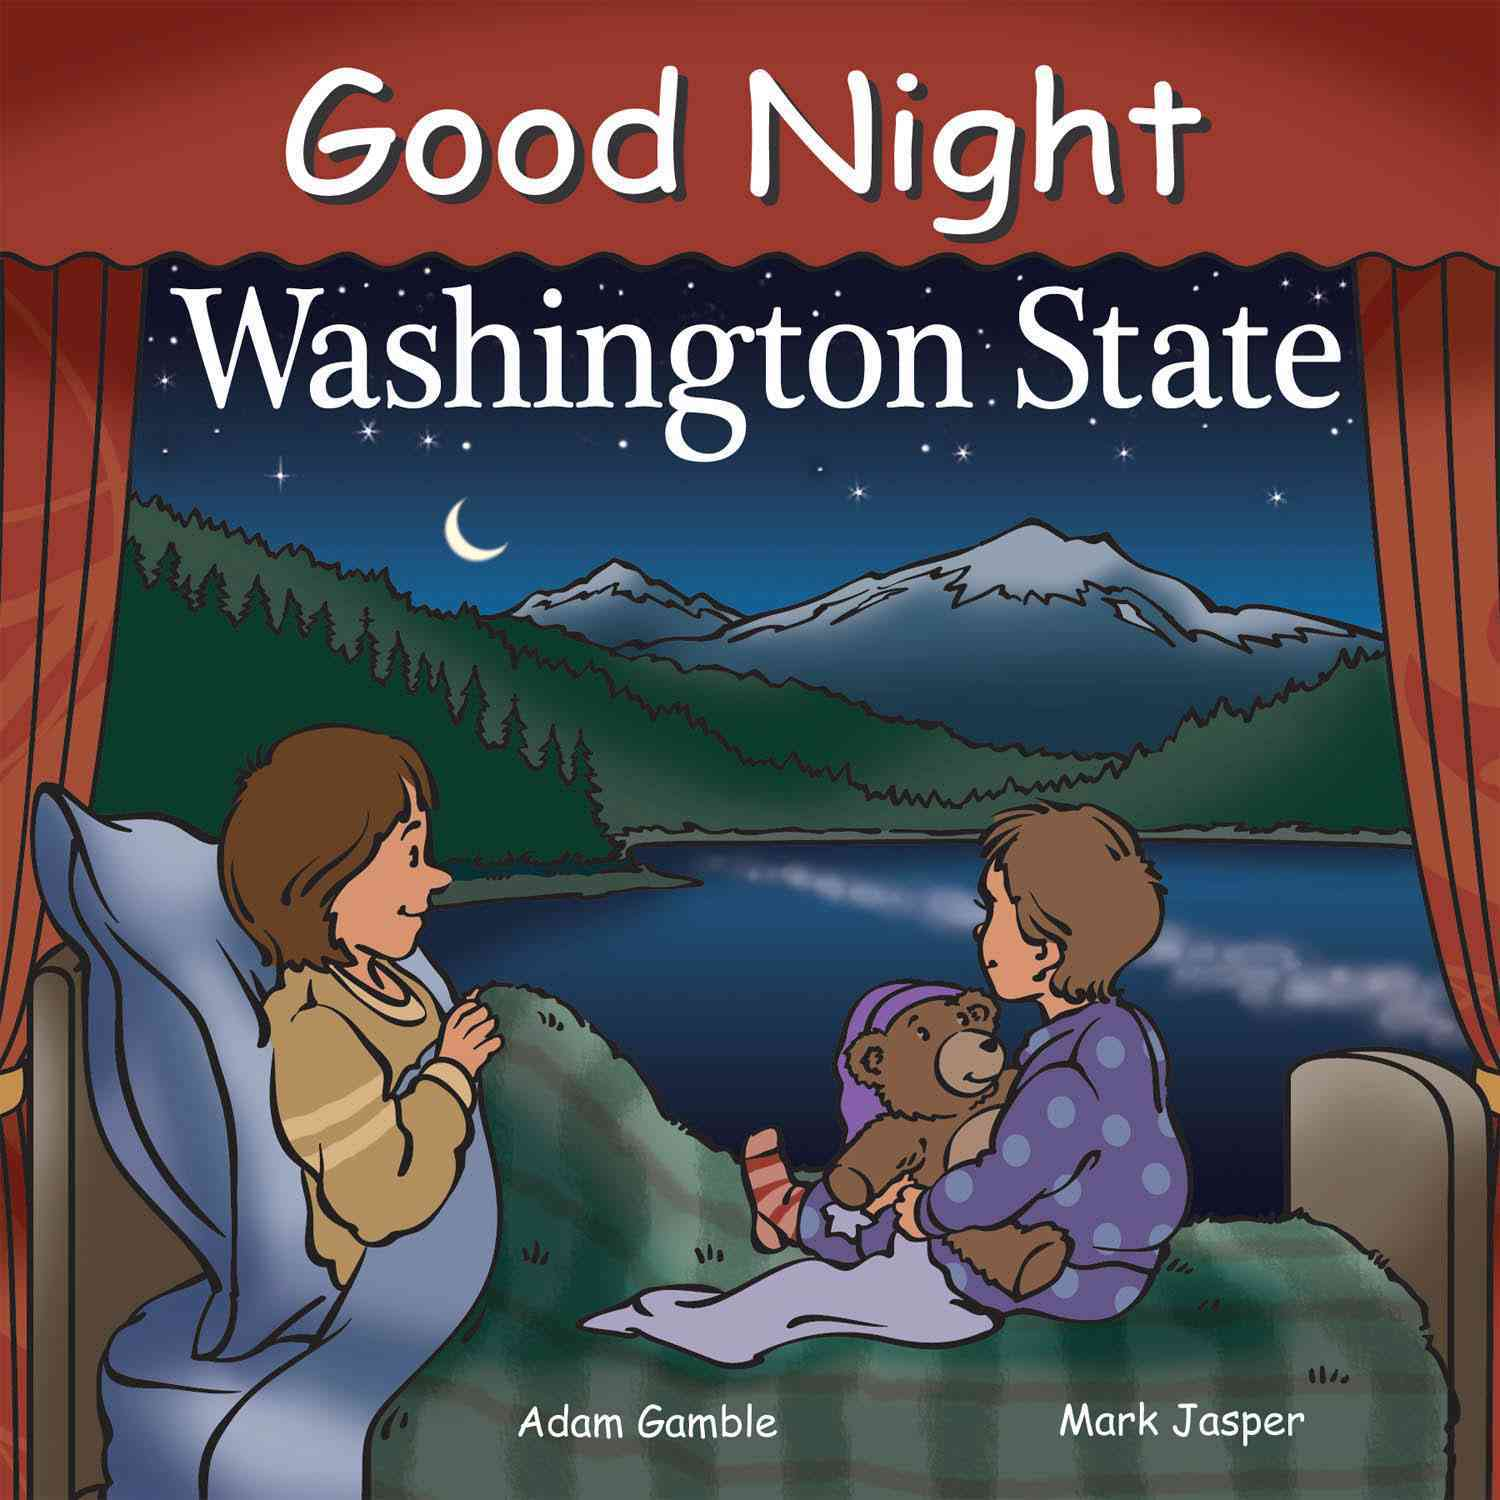 Good Night Washington State By Gamble, Adam/ Jasper, Mark (ILT)/ Veno, Joe (ILT)